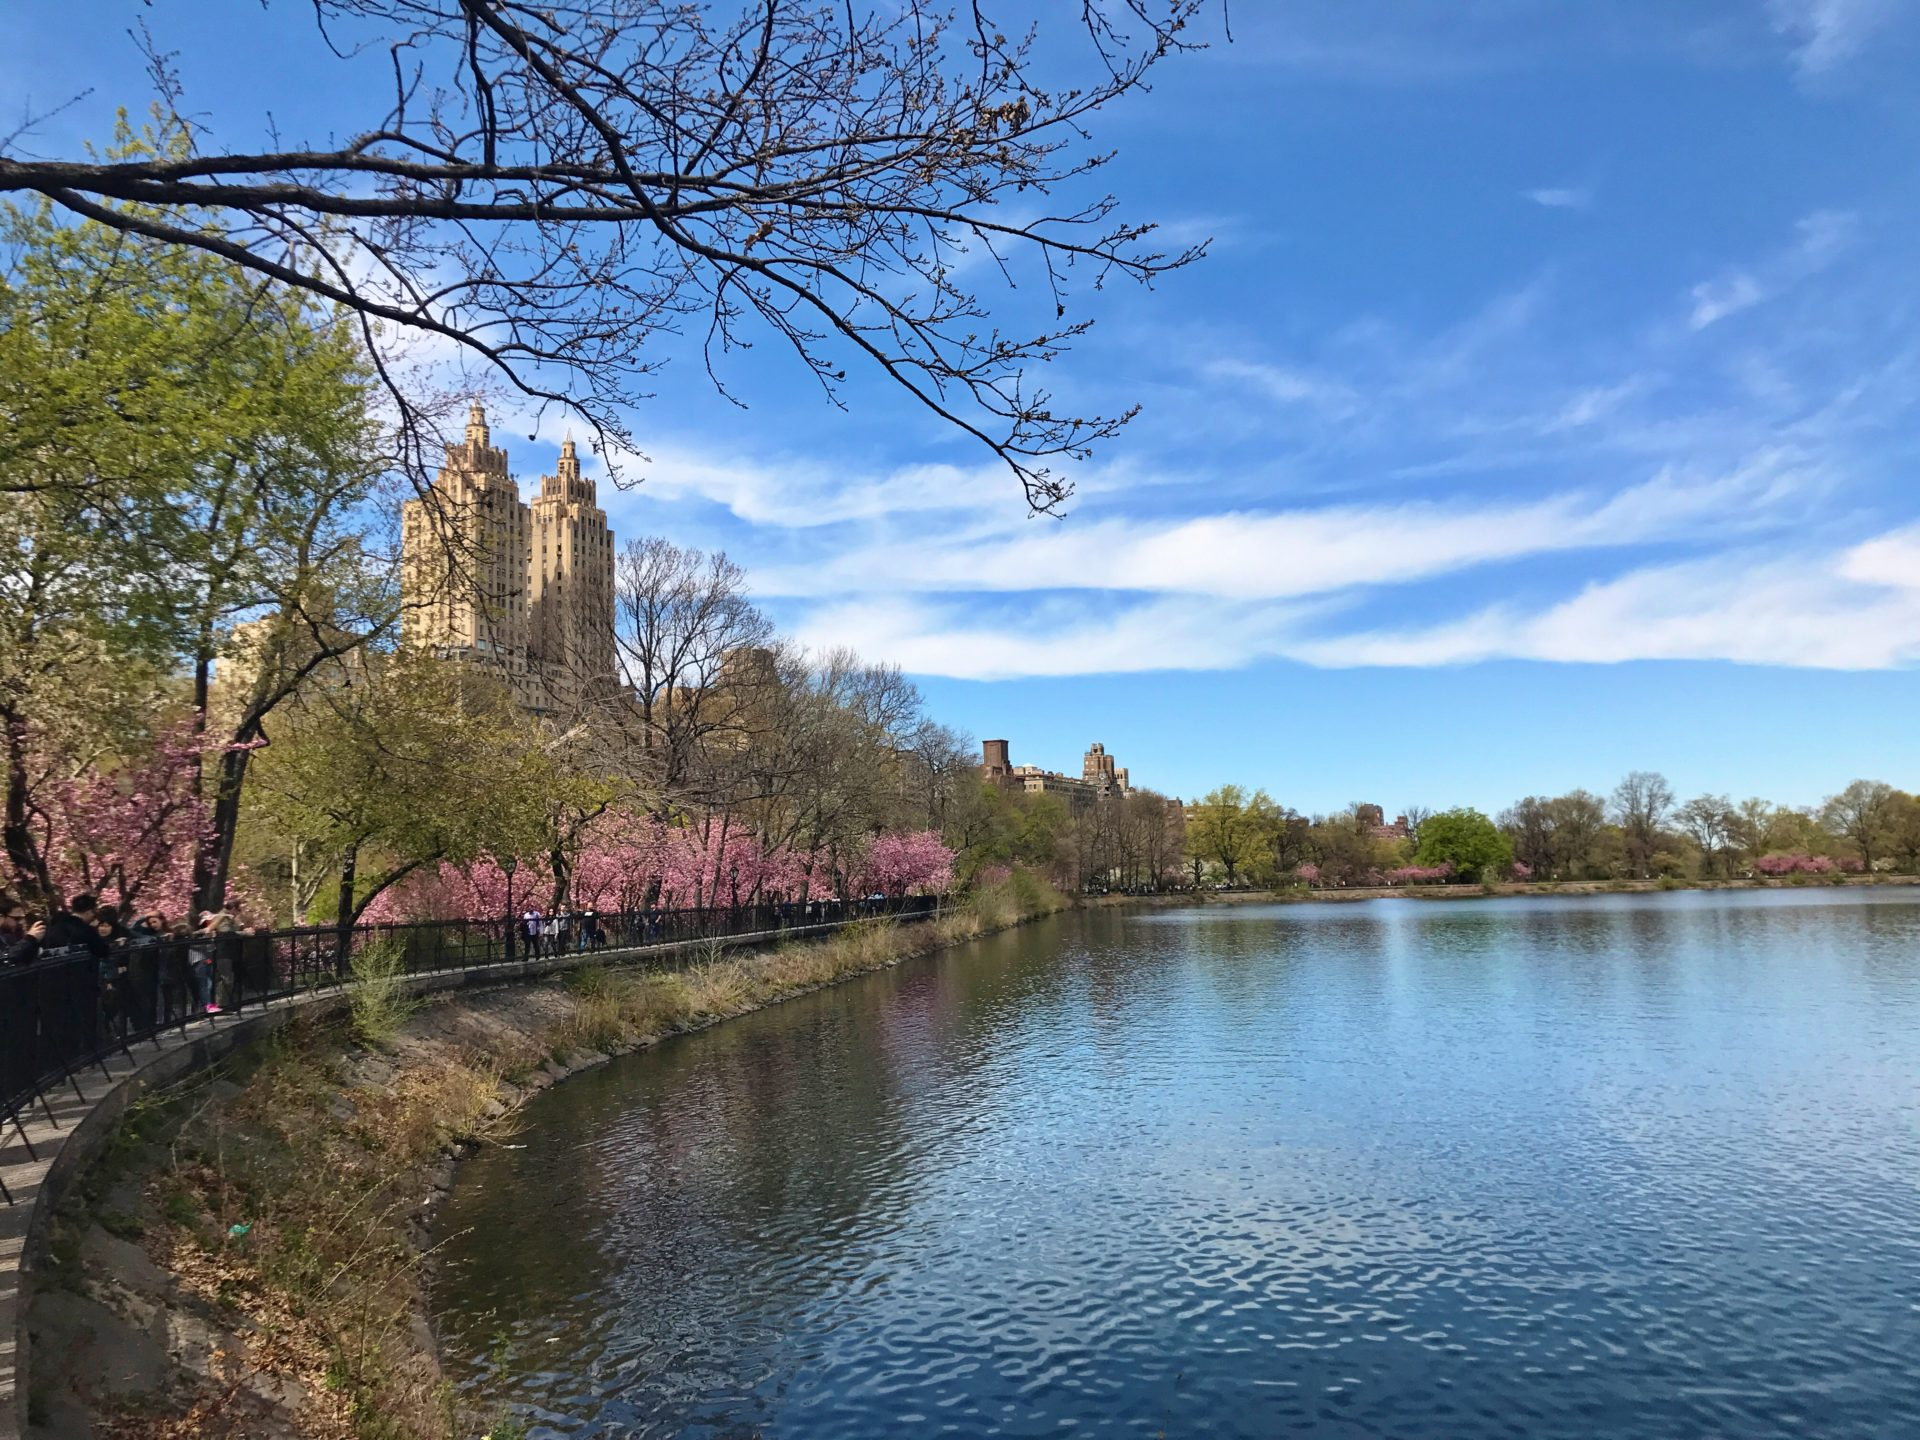 Cherry Blossoms at the Jacquelyn Kennedy Onnasis Reservoir in Central Park